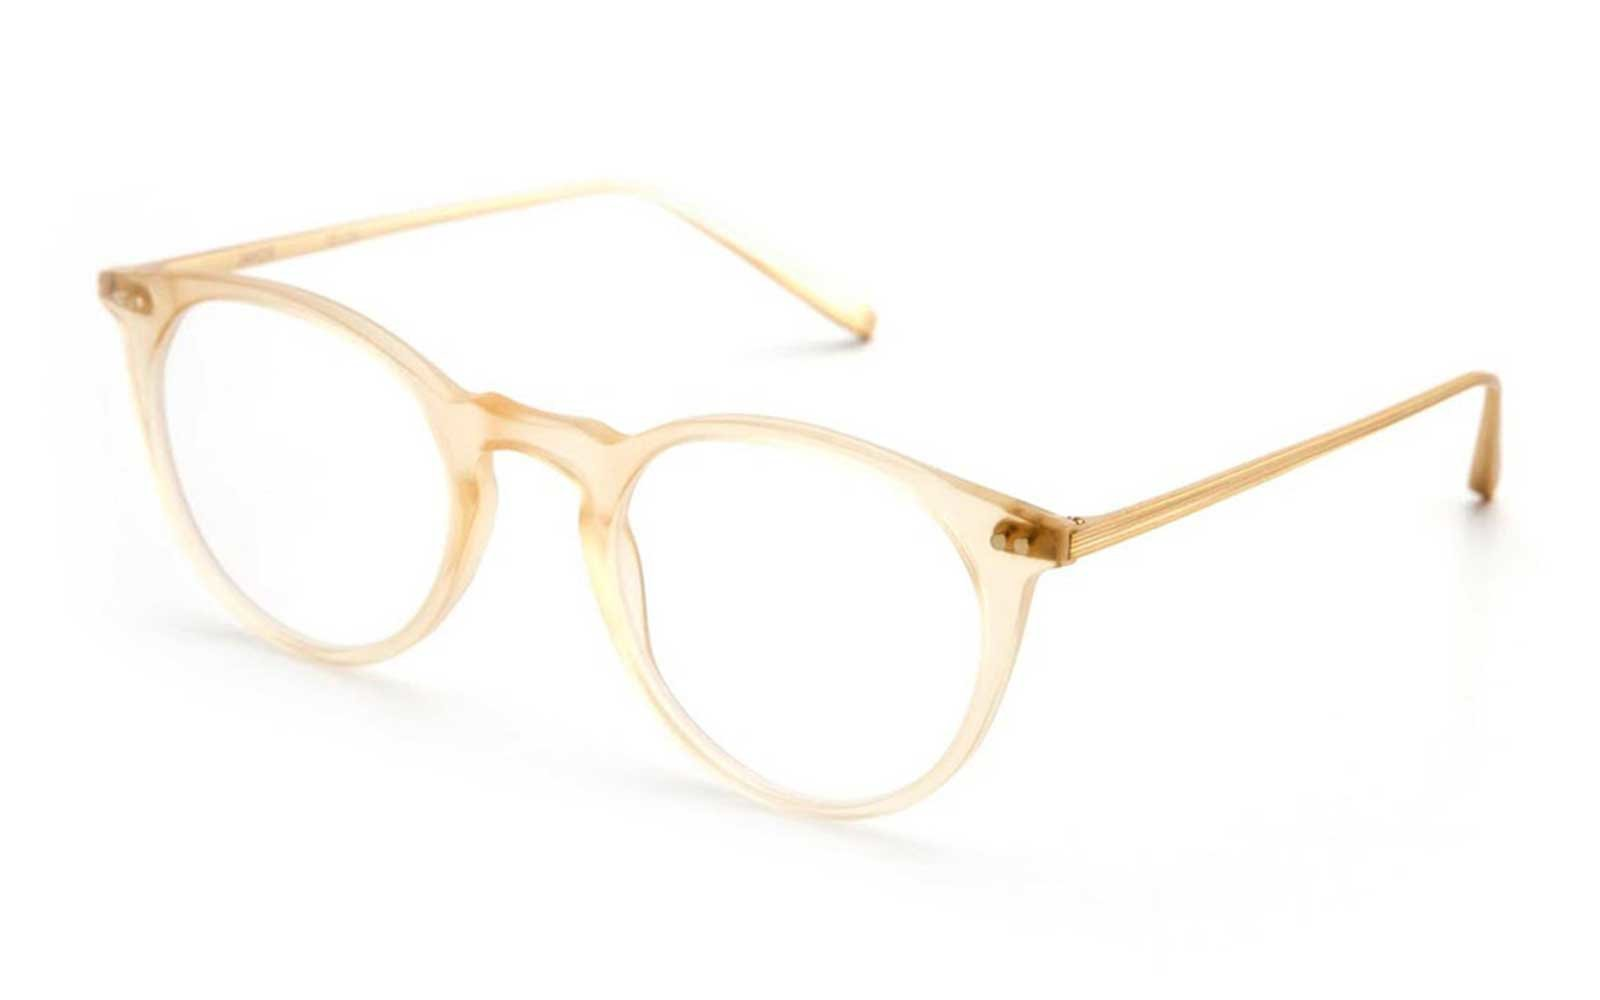 Gold Glasses Frames